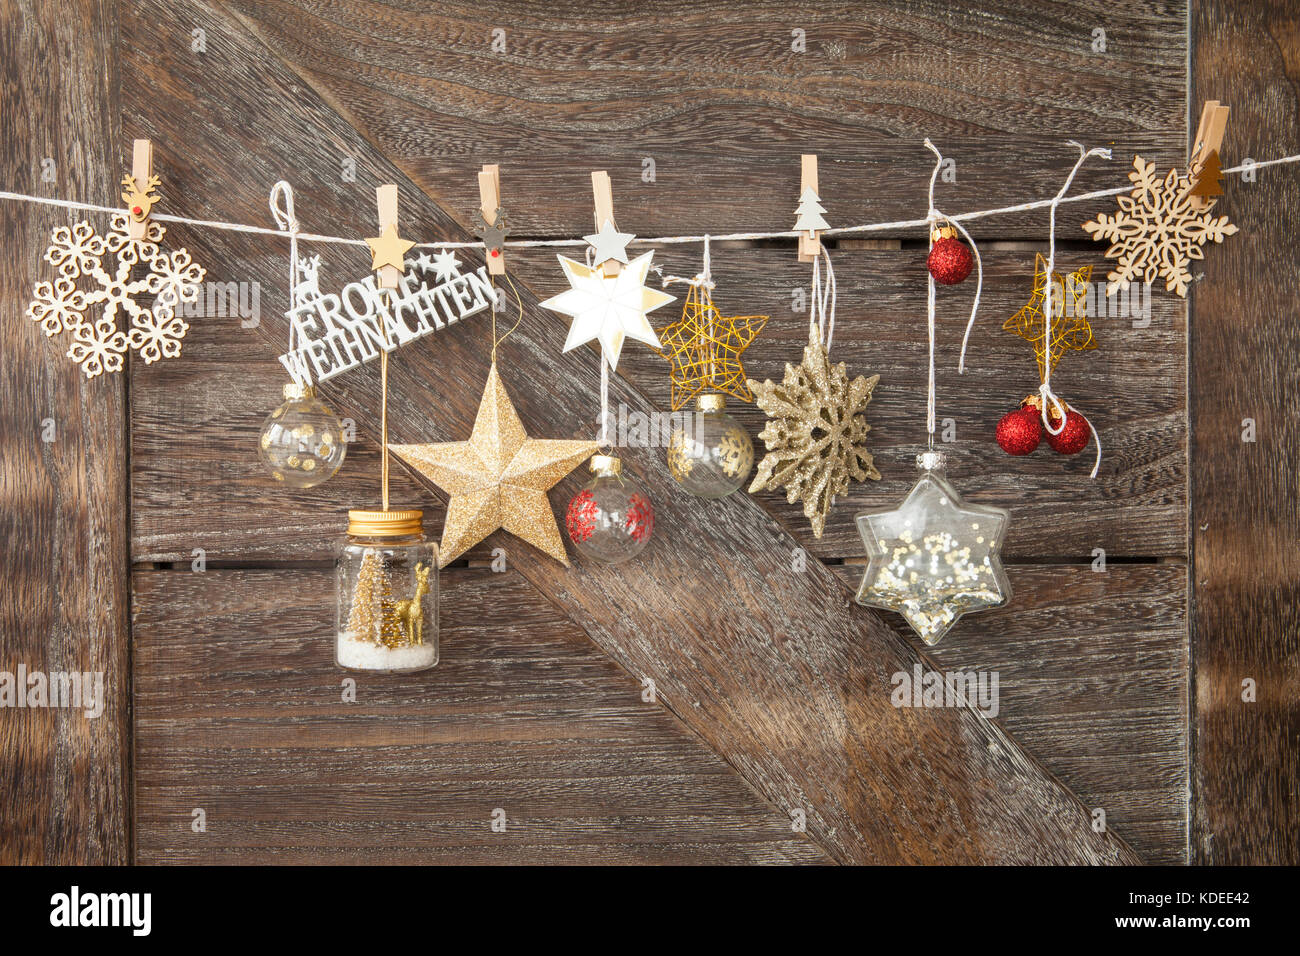 Rustic wooden christmas background with festive ornaments, Frohe ...